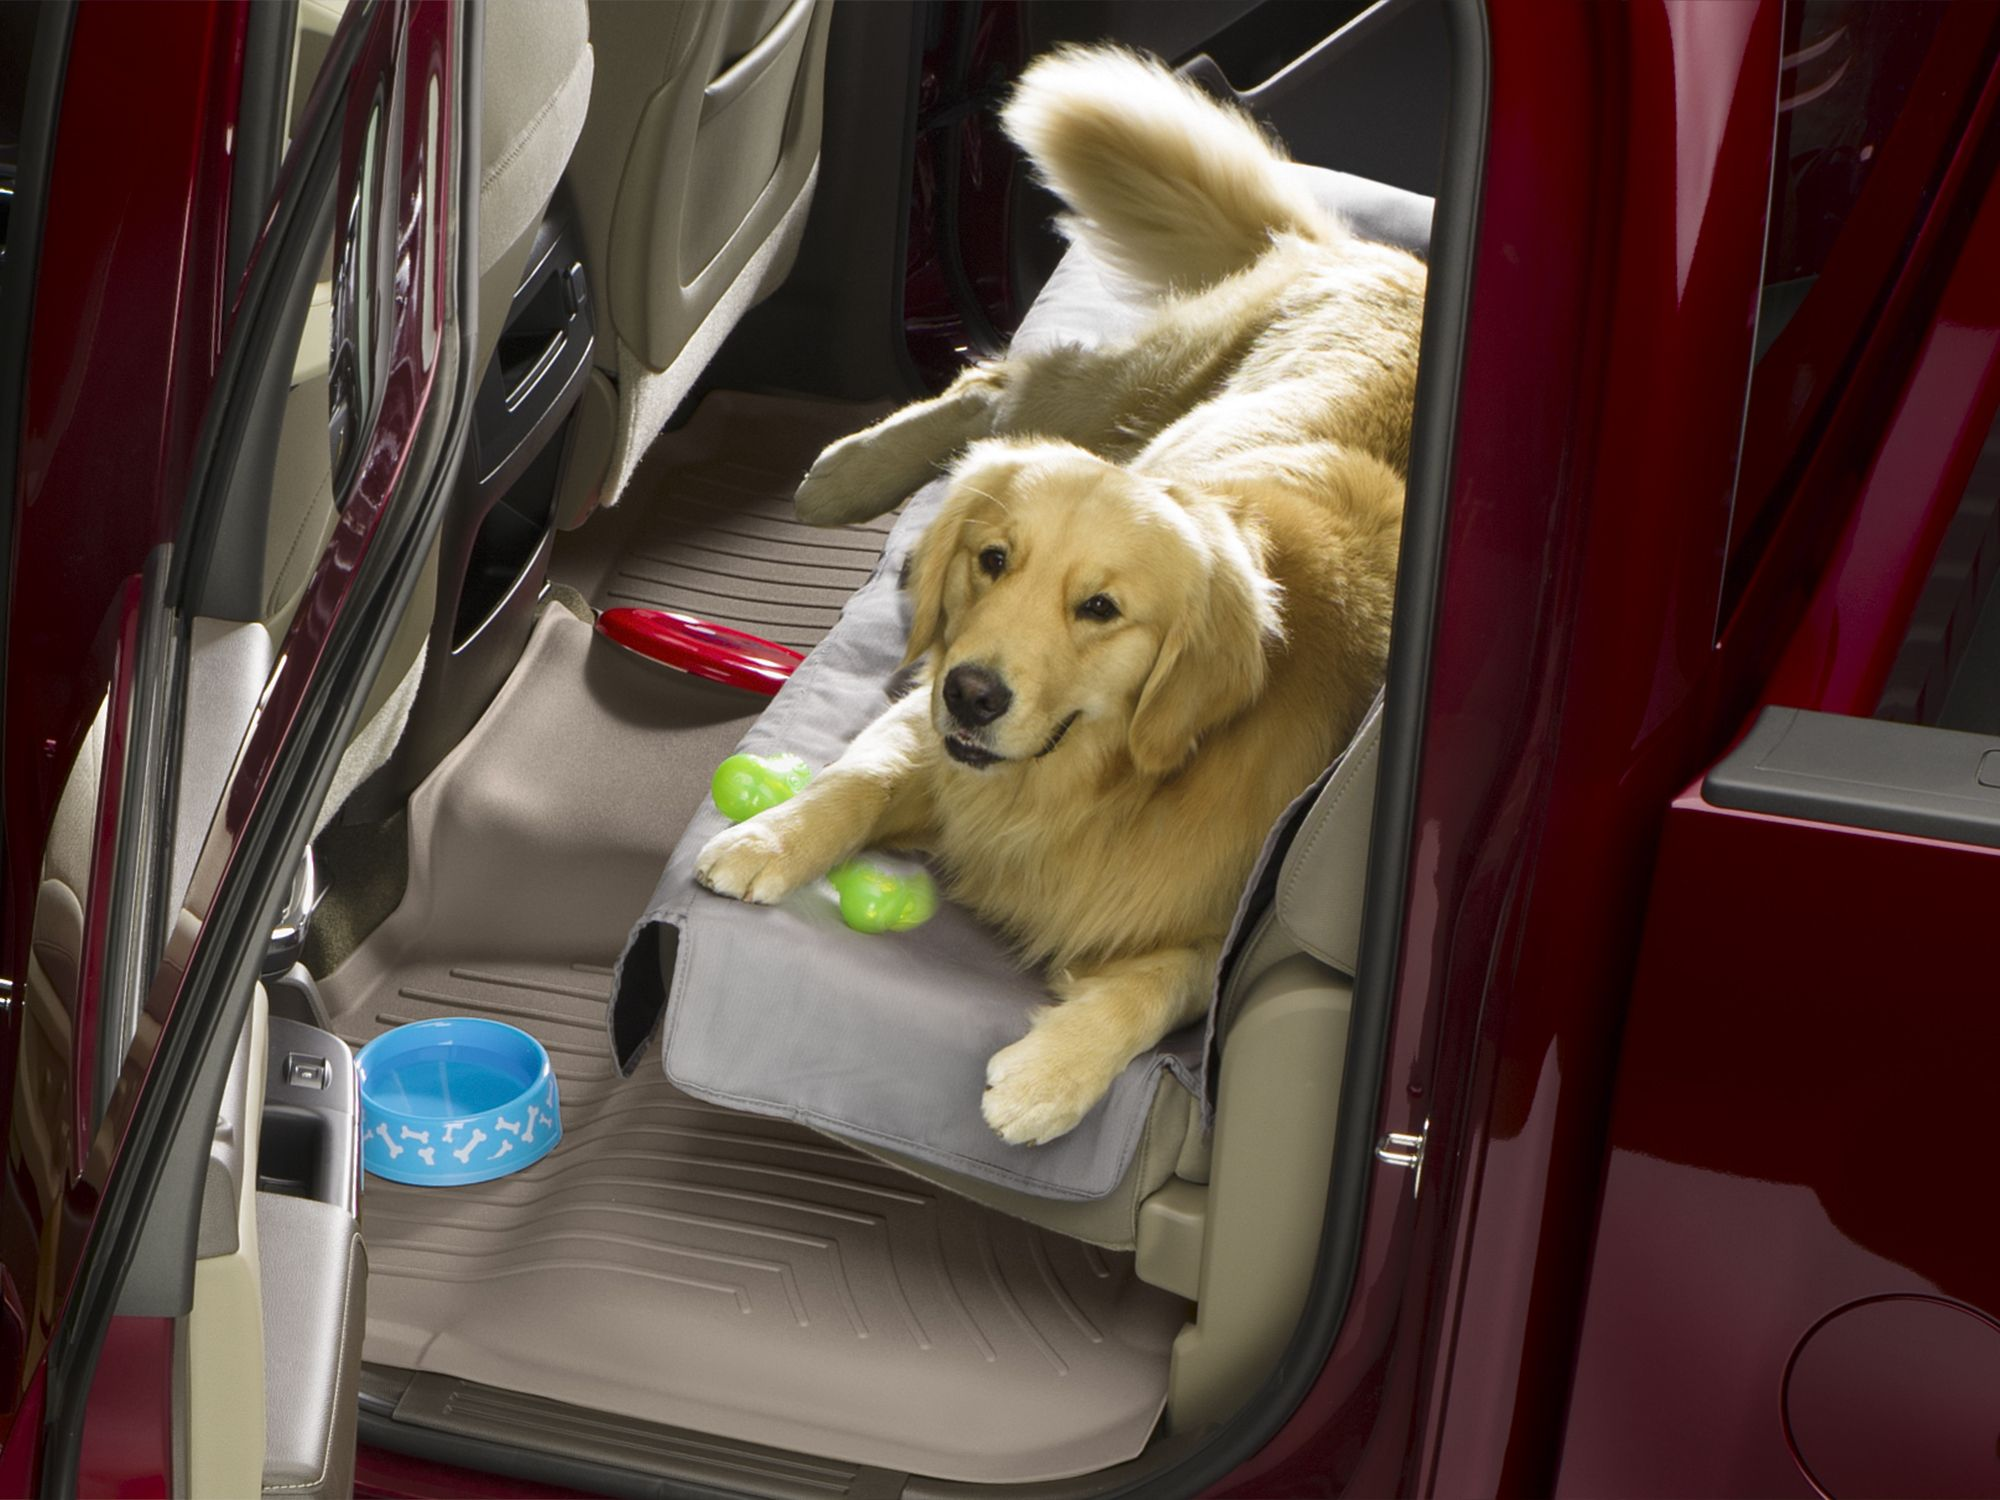 Seat Protector Seat protector, Pet seat covers, Seat covers